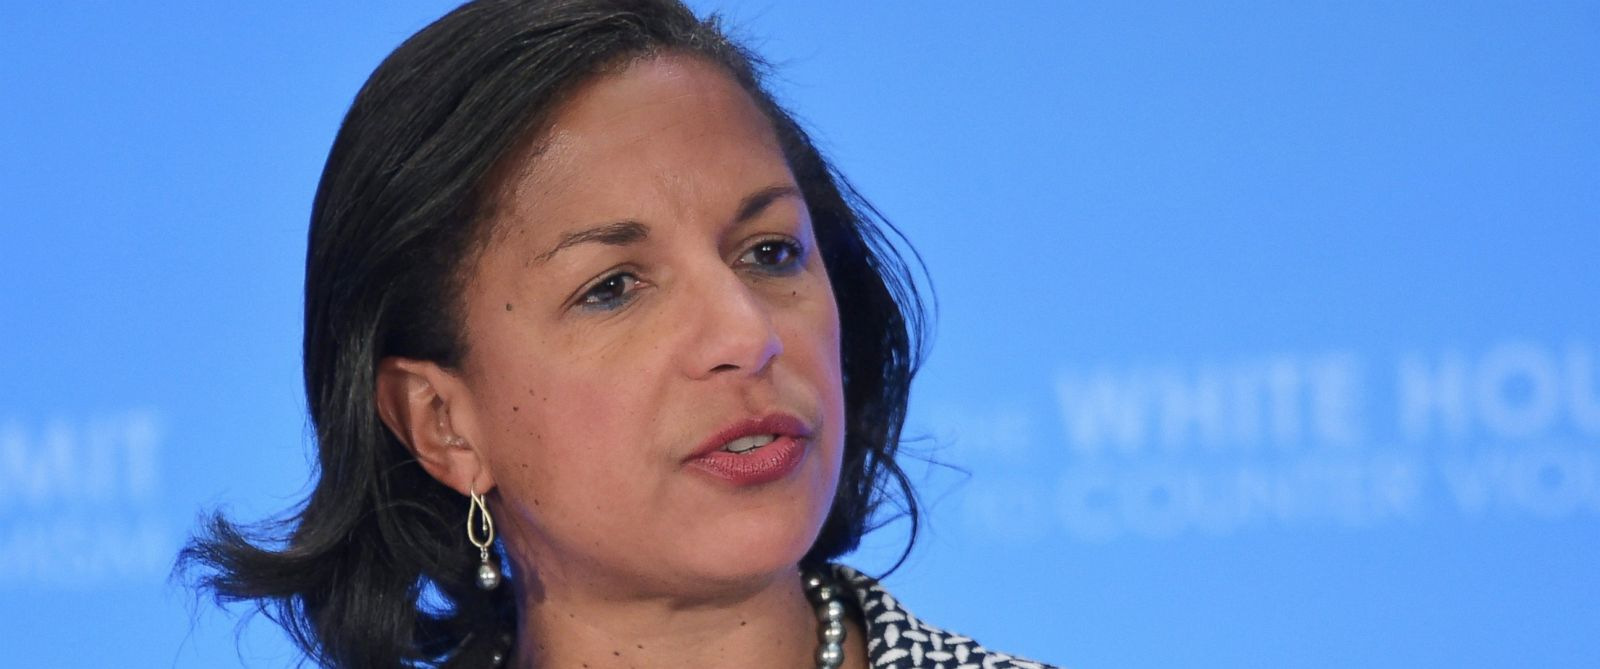 Susan Rice, the former U.S national security adviser, speaks during the closing session of the White House Summit to Counter Violent Extremism at the State Department in Washington, D.C., when she was the U.S. national security adviser, Feb. 19, 2015.